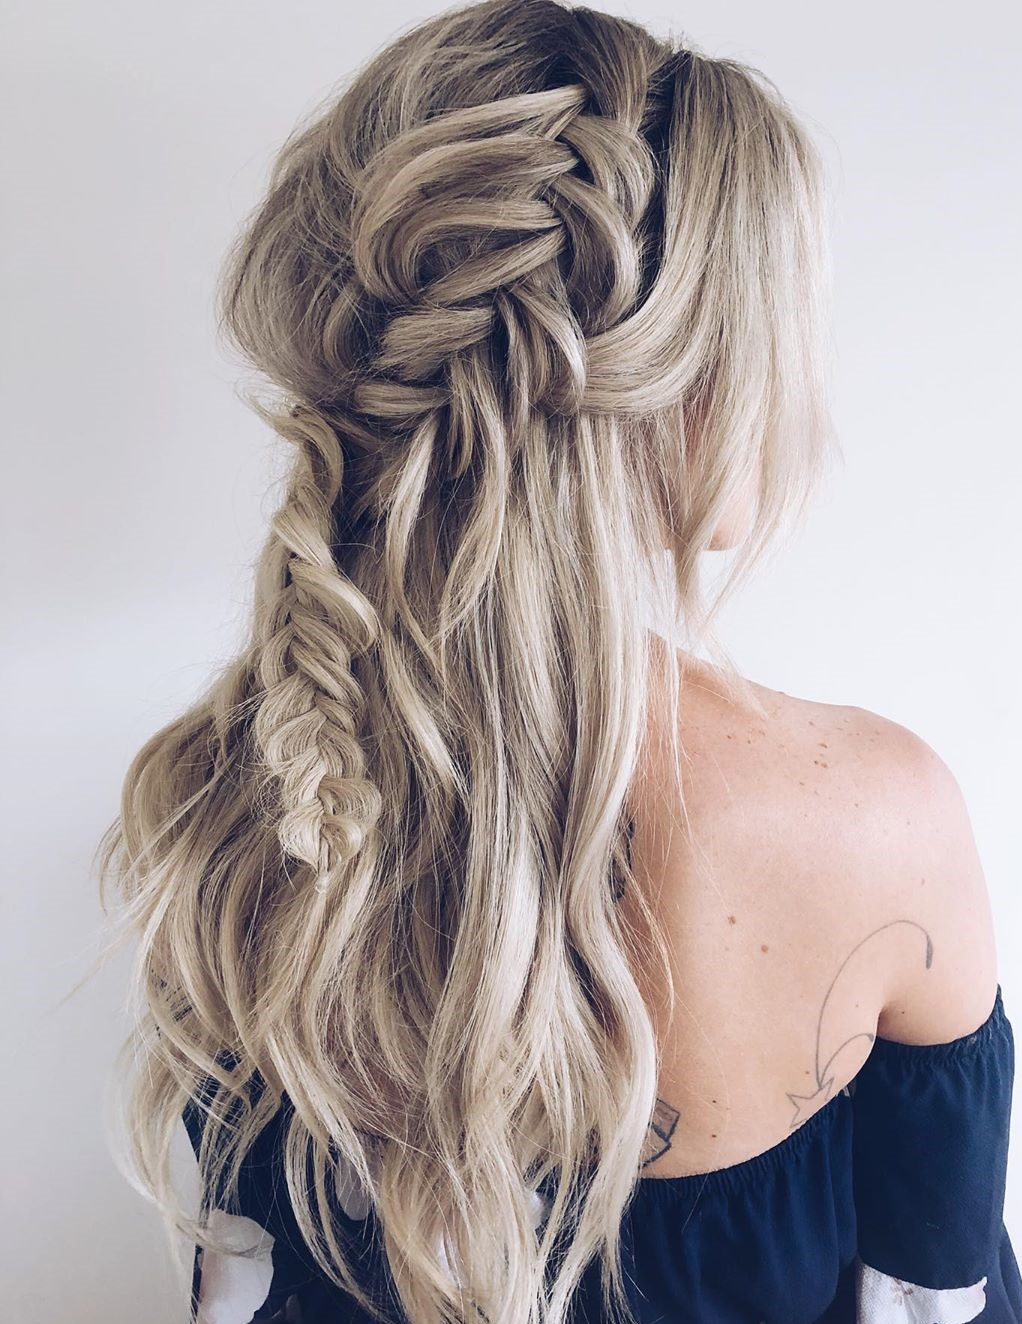 Braided Half Up Hairstyle with Bangs